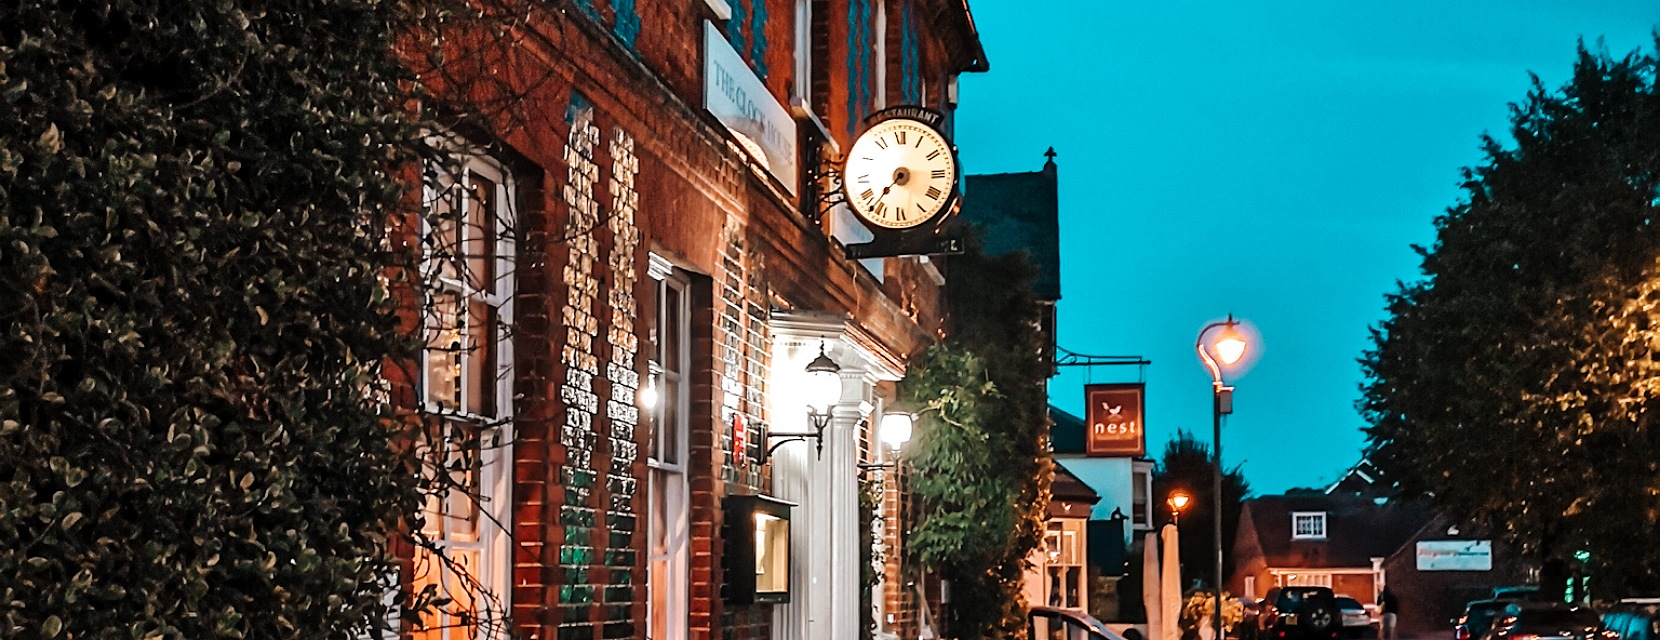 Restaurant recommendation: The Clock House, romantic fine dining in Surrey 81